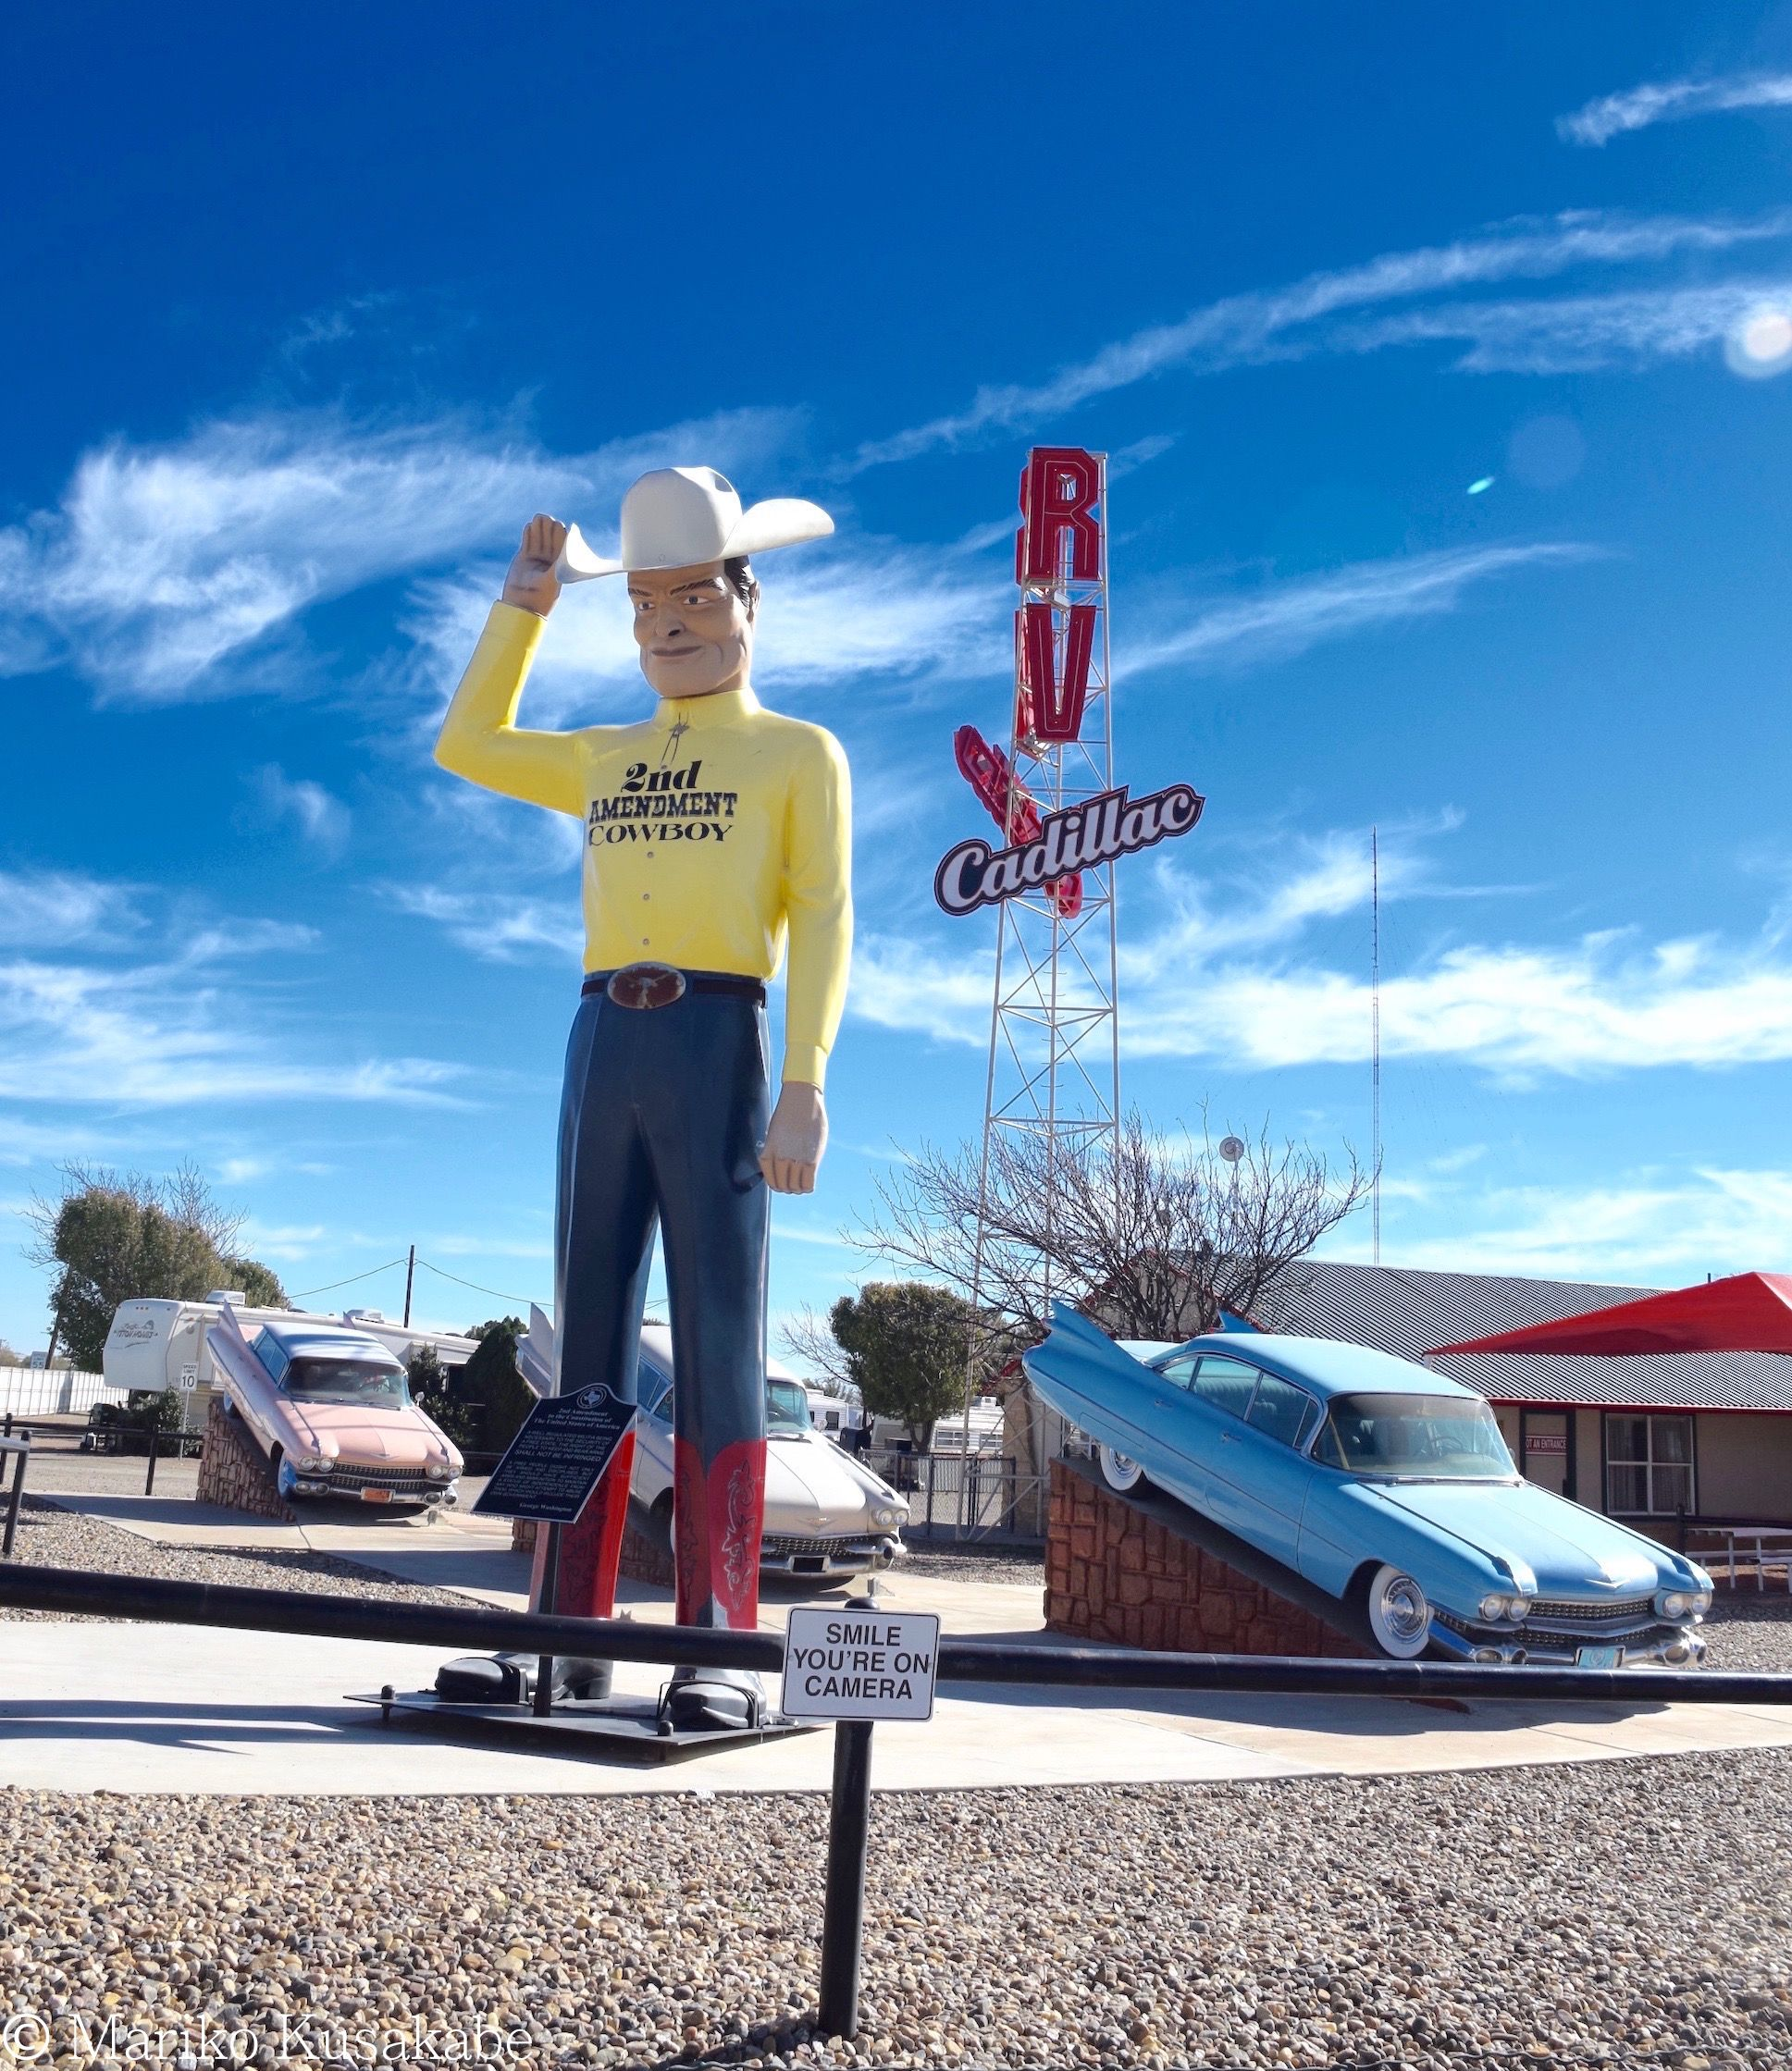 Pin by Jaycee Castro on Route 66 Roadtrip | Route 66 road